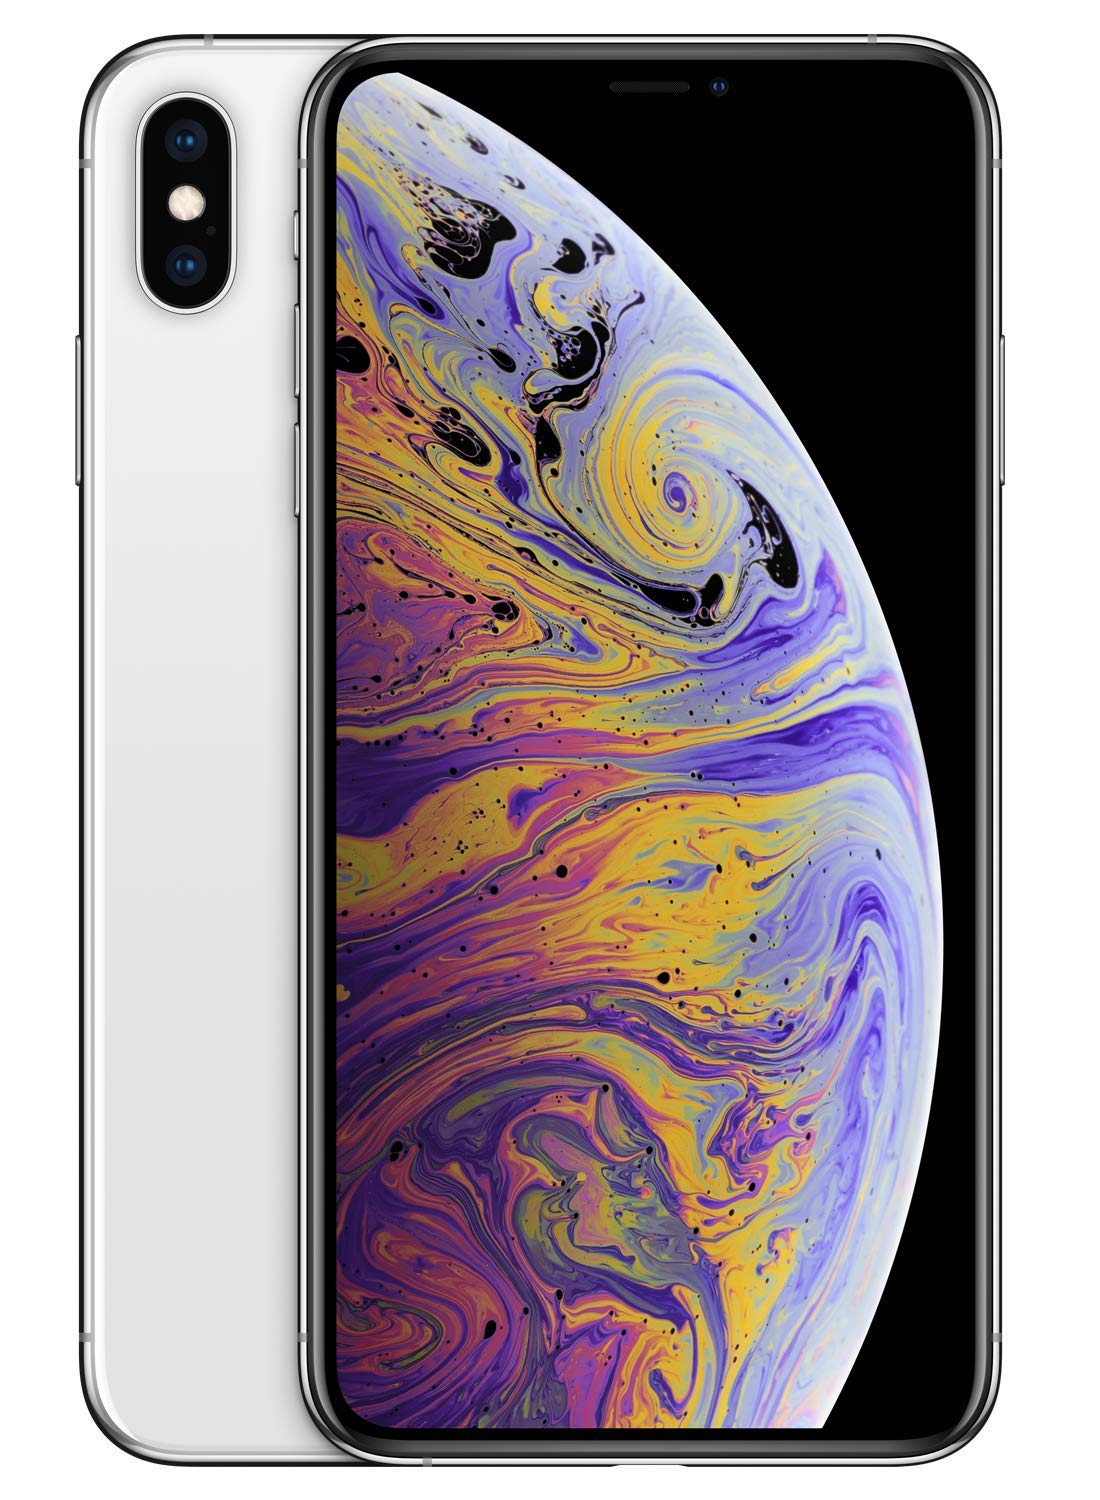 Simple Mobile Prepaid - Apple iPhone XS Max (64GB) - Silver